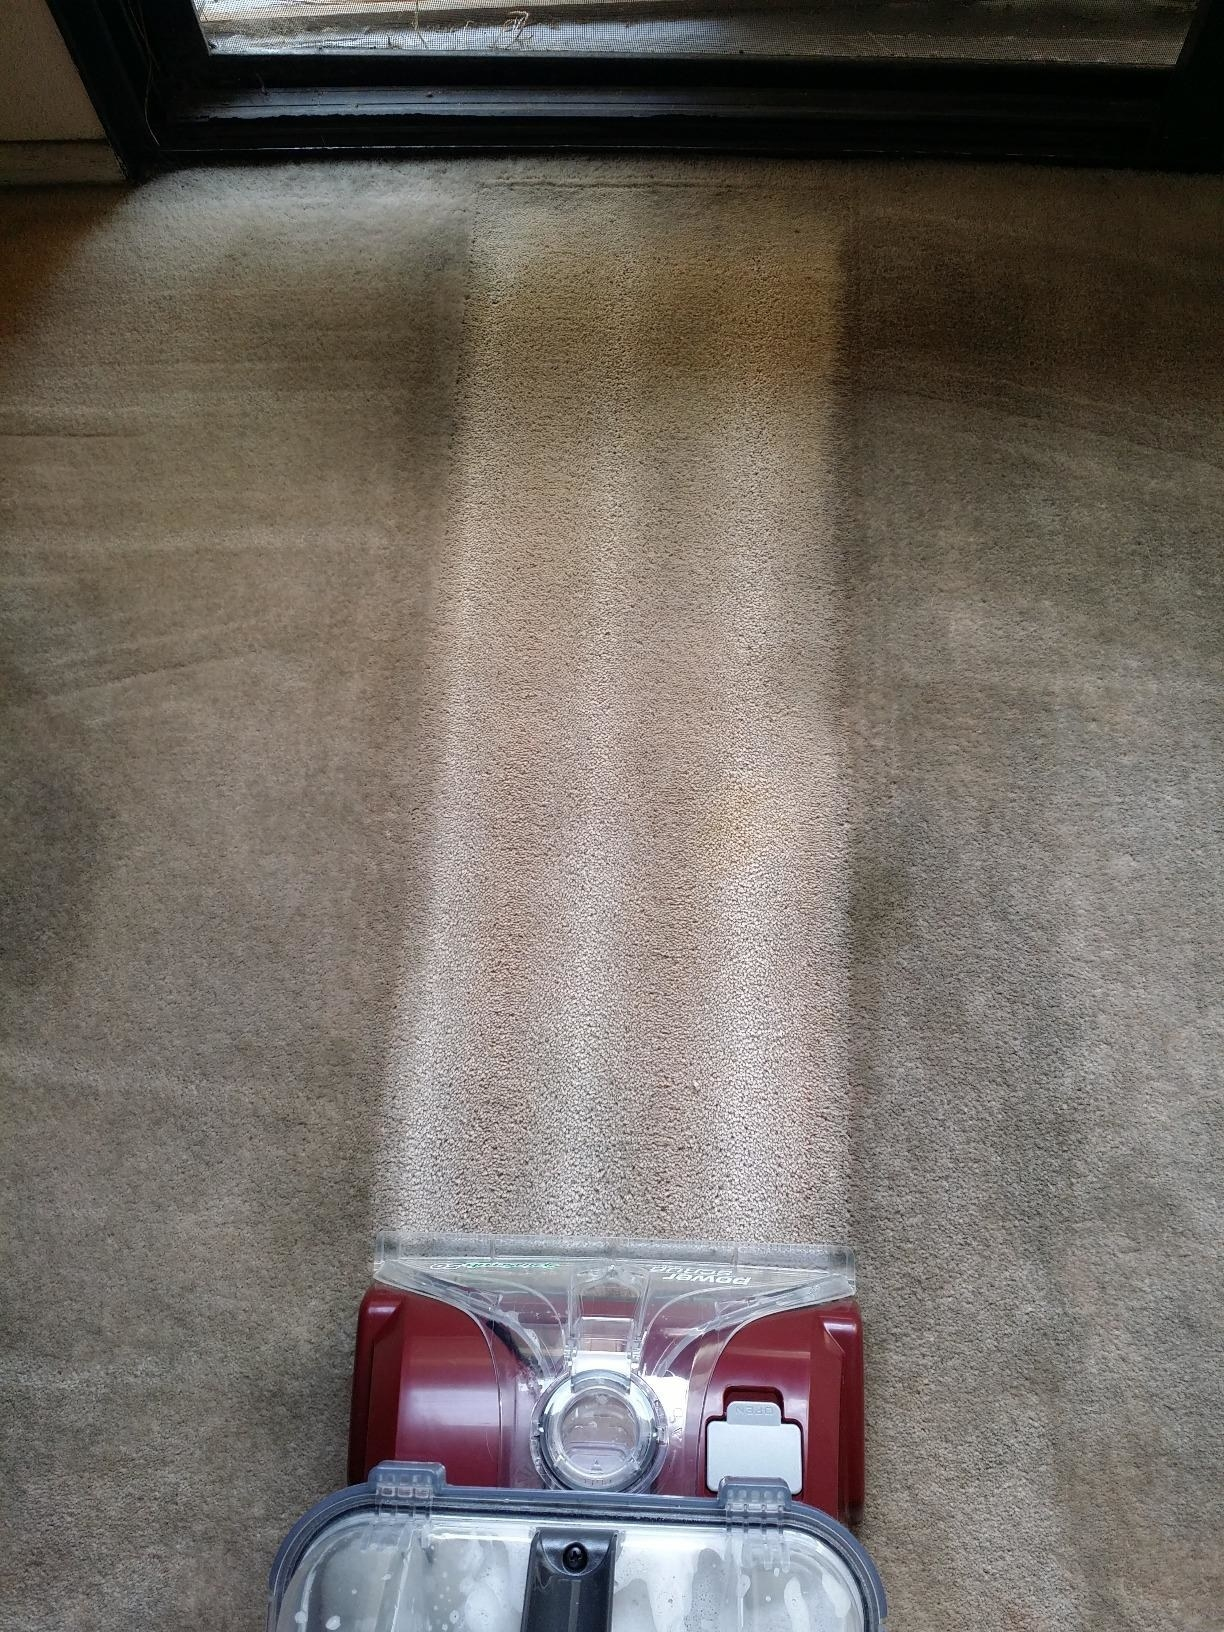 reviewer image of vacuum cleaning carpet. there is a stripe that is noticeably cleaner